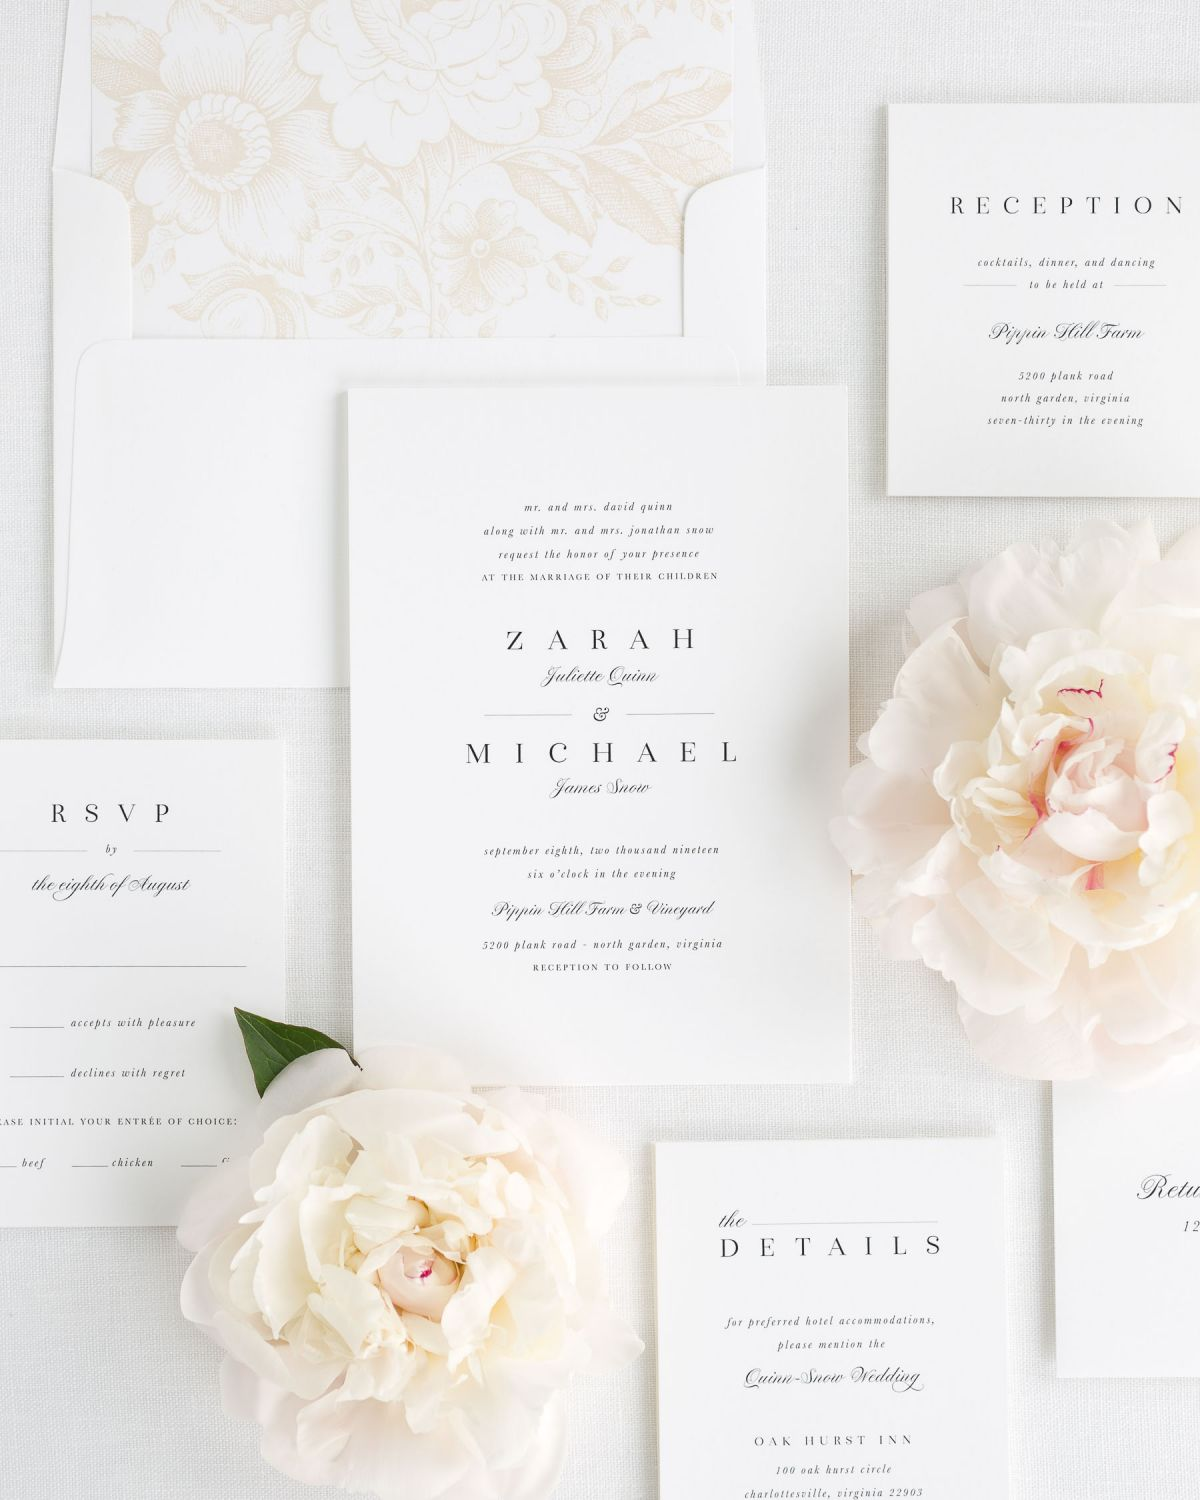 Perfect Classic Wedding Invitations In Champagne With A Floral Envelope Liner ...